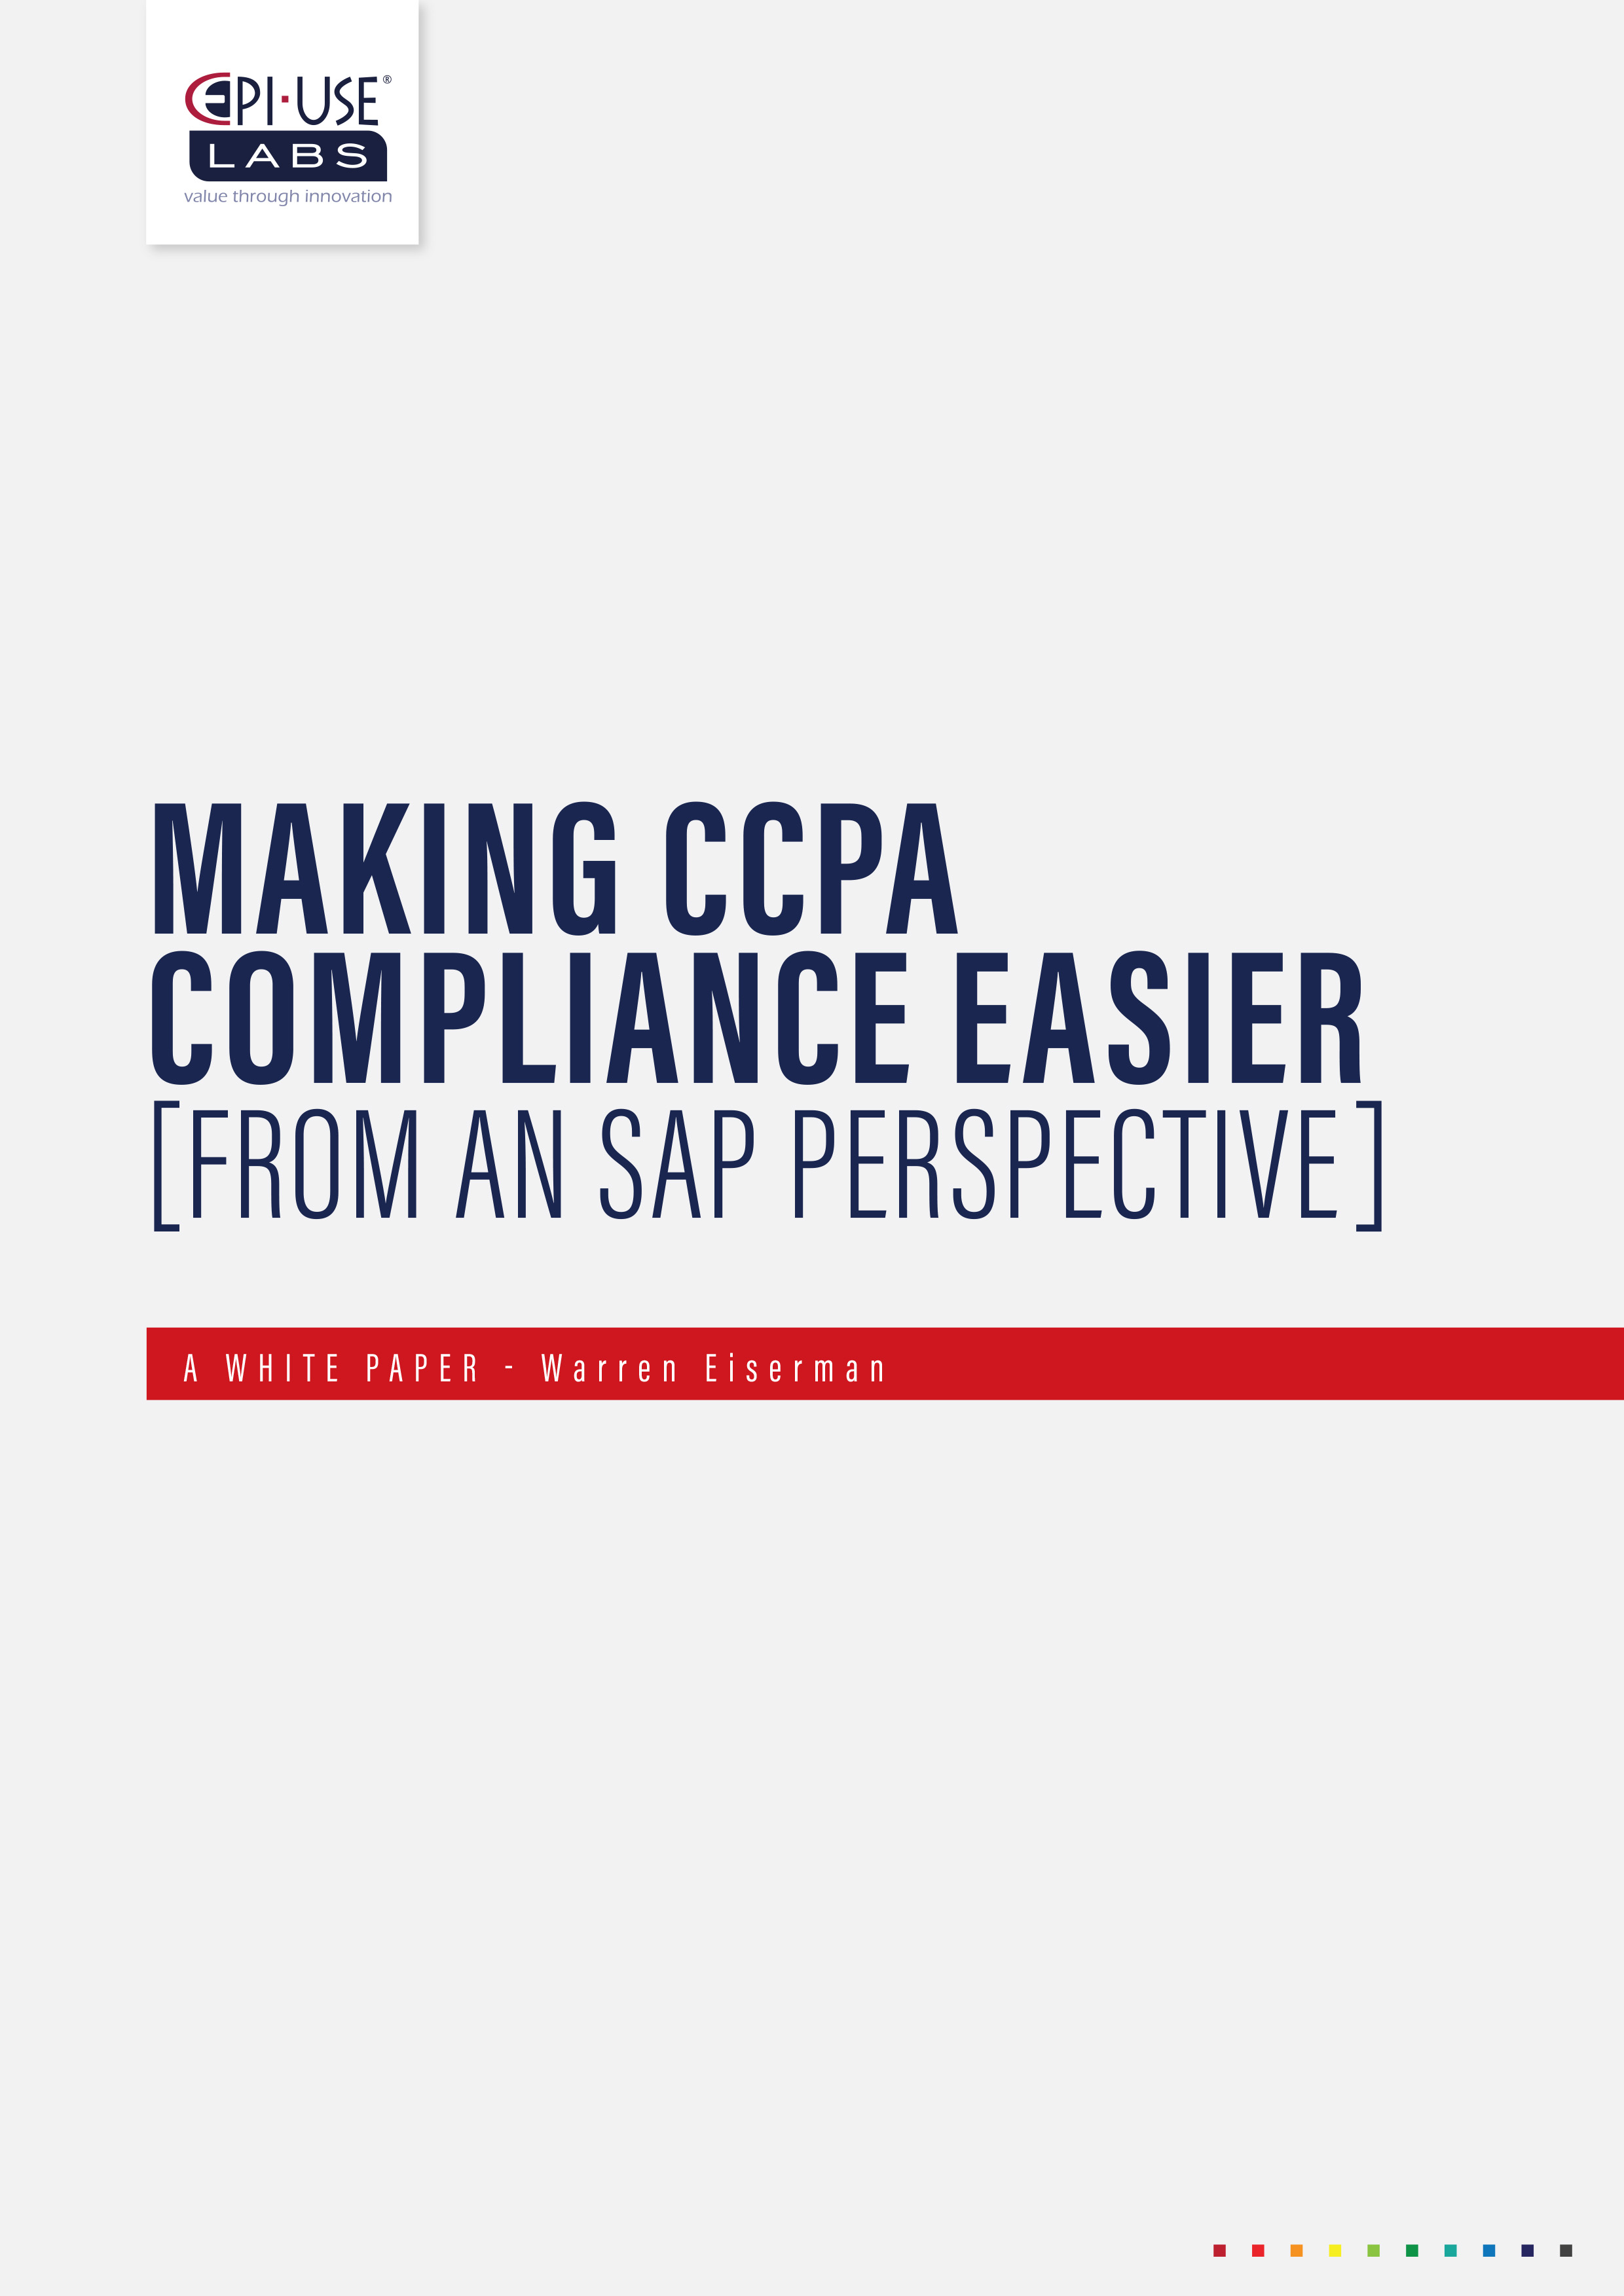 CCPA Compliance White Paper